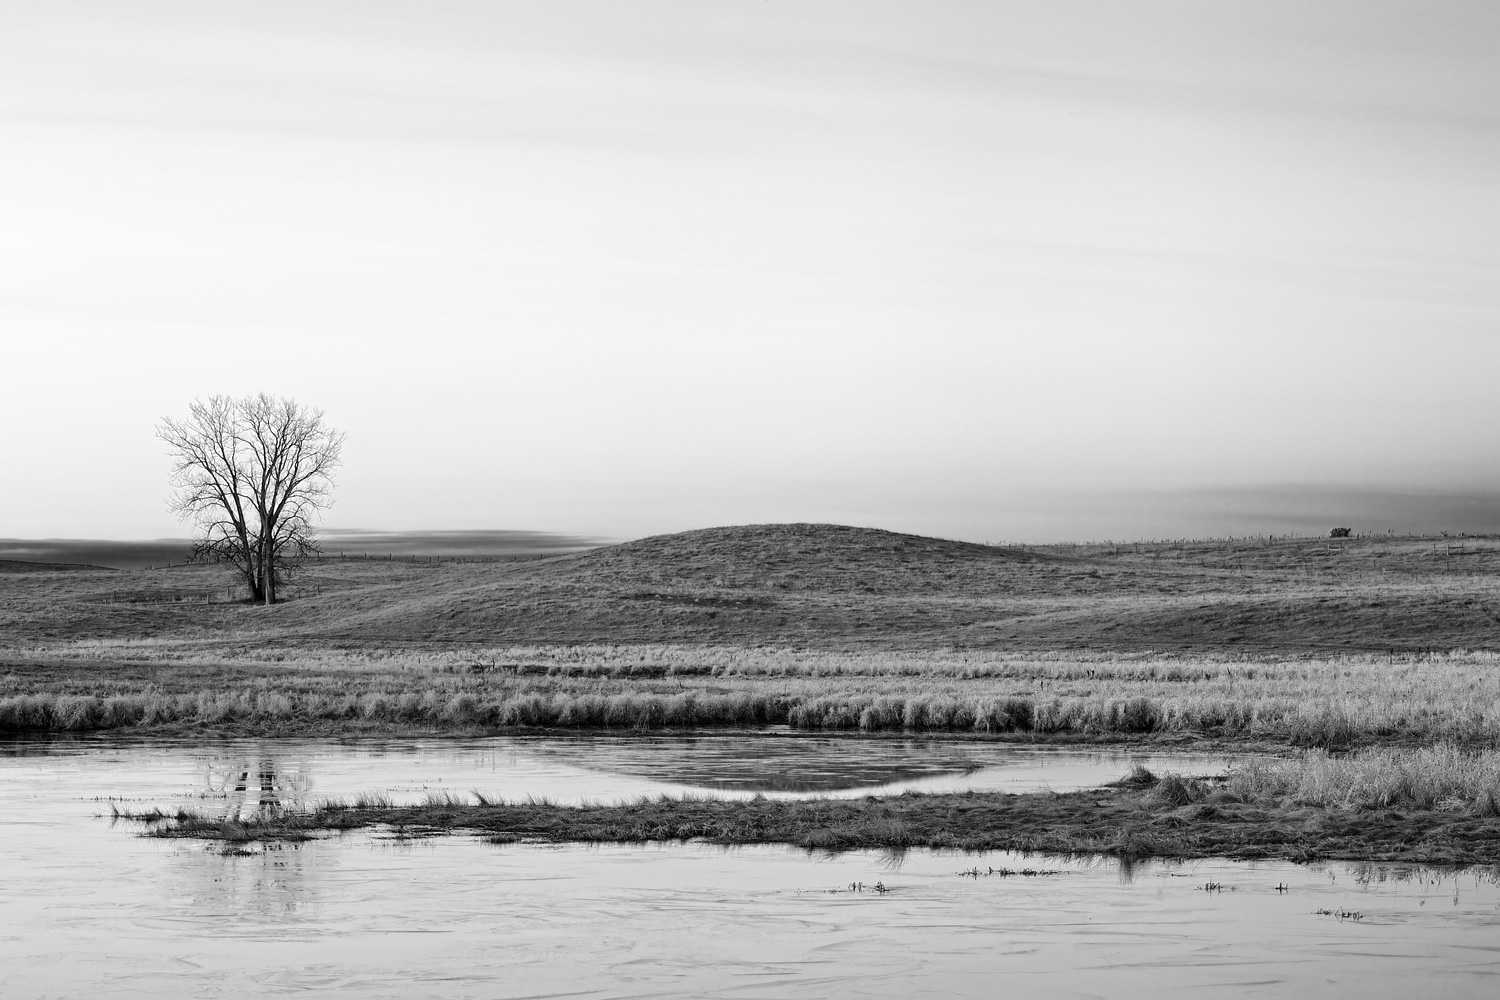 One Tree Farm - Stillwater Area, MN    Canon 5D Mark iii + Canon 100mm f2.8 Macro